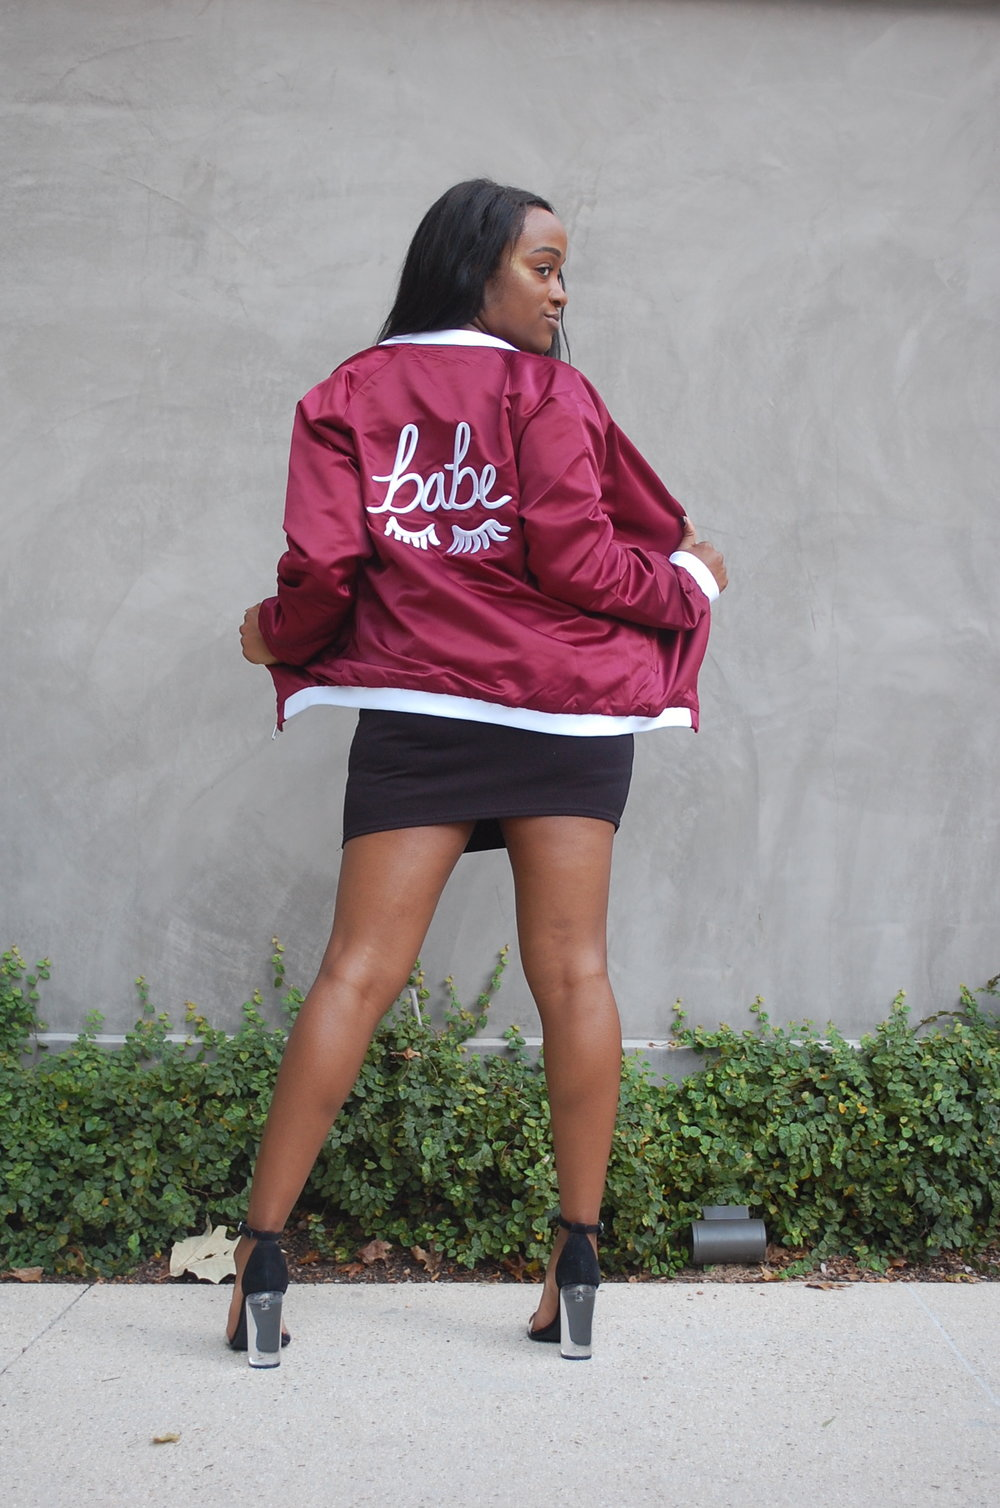 Let 'em know with this bomb Babe jacket from  The Style Club